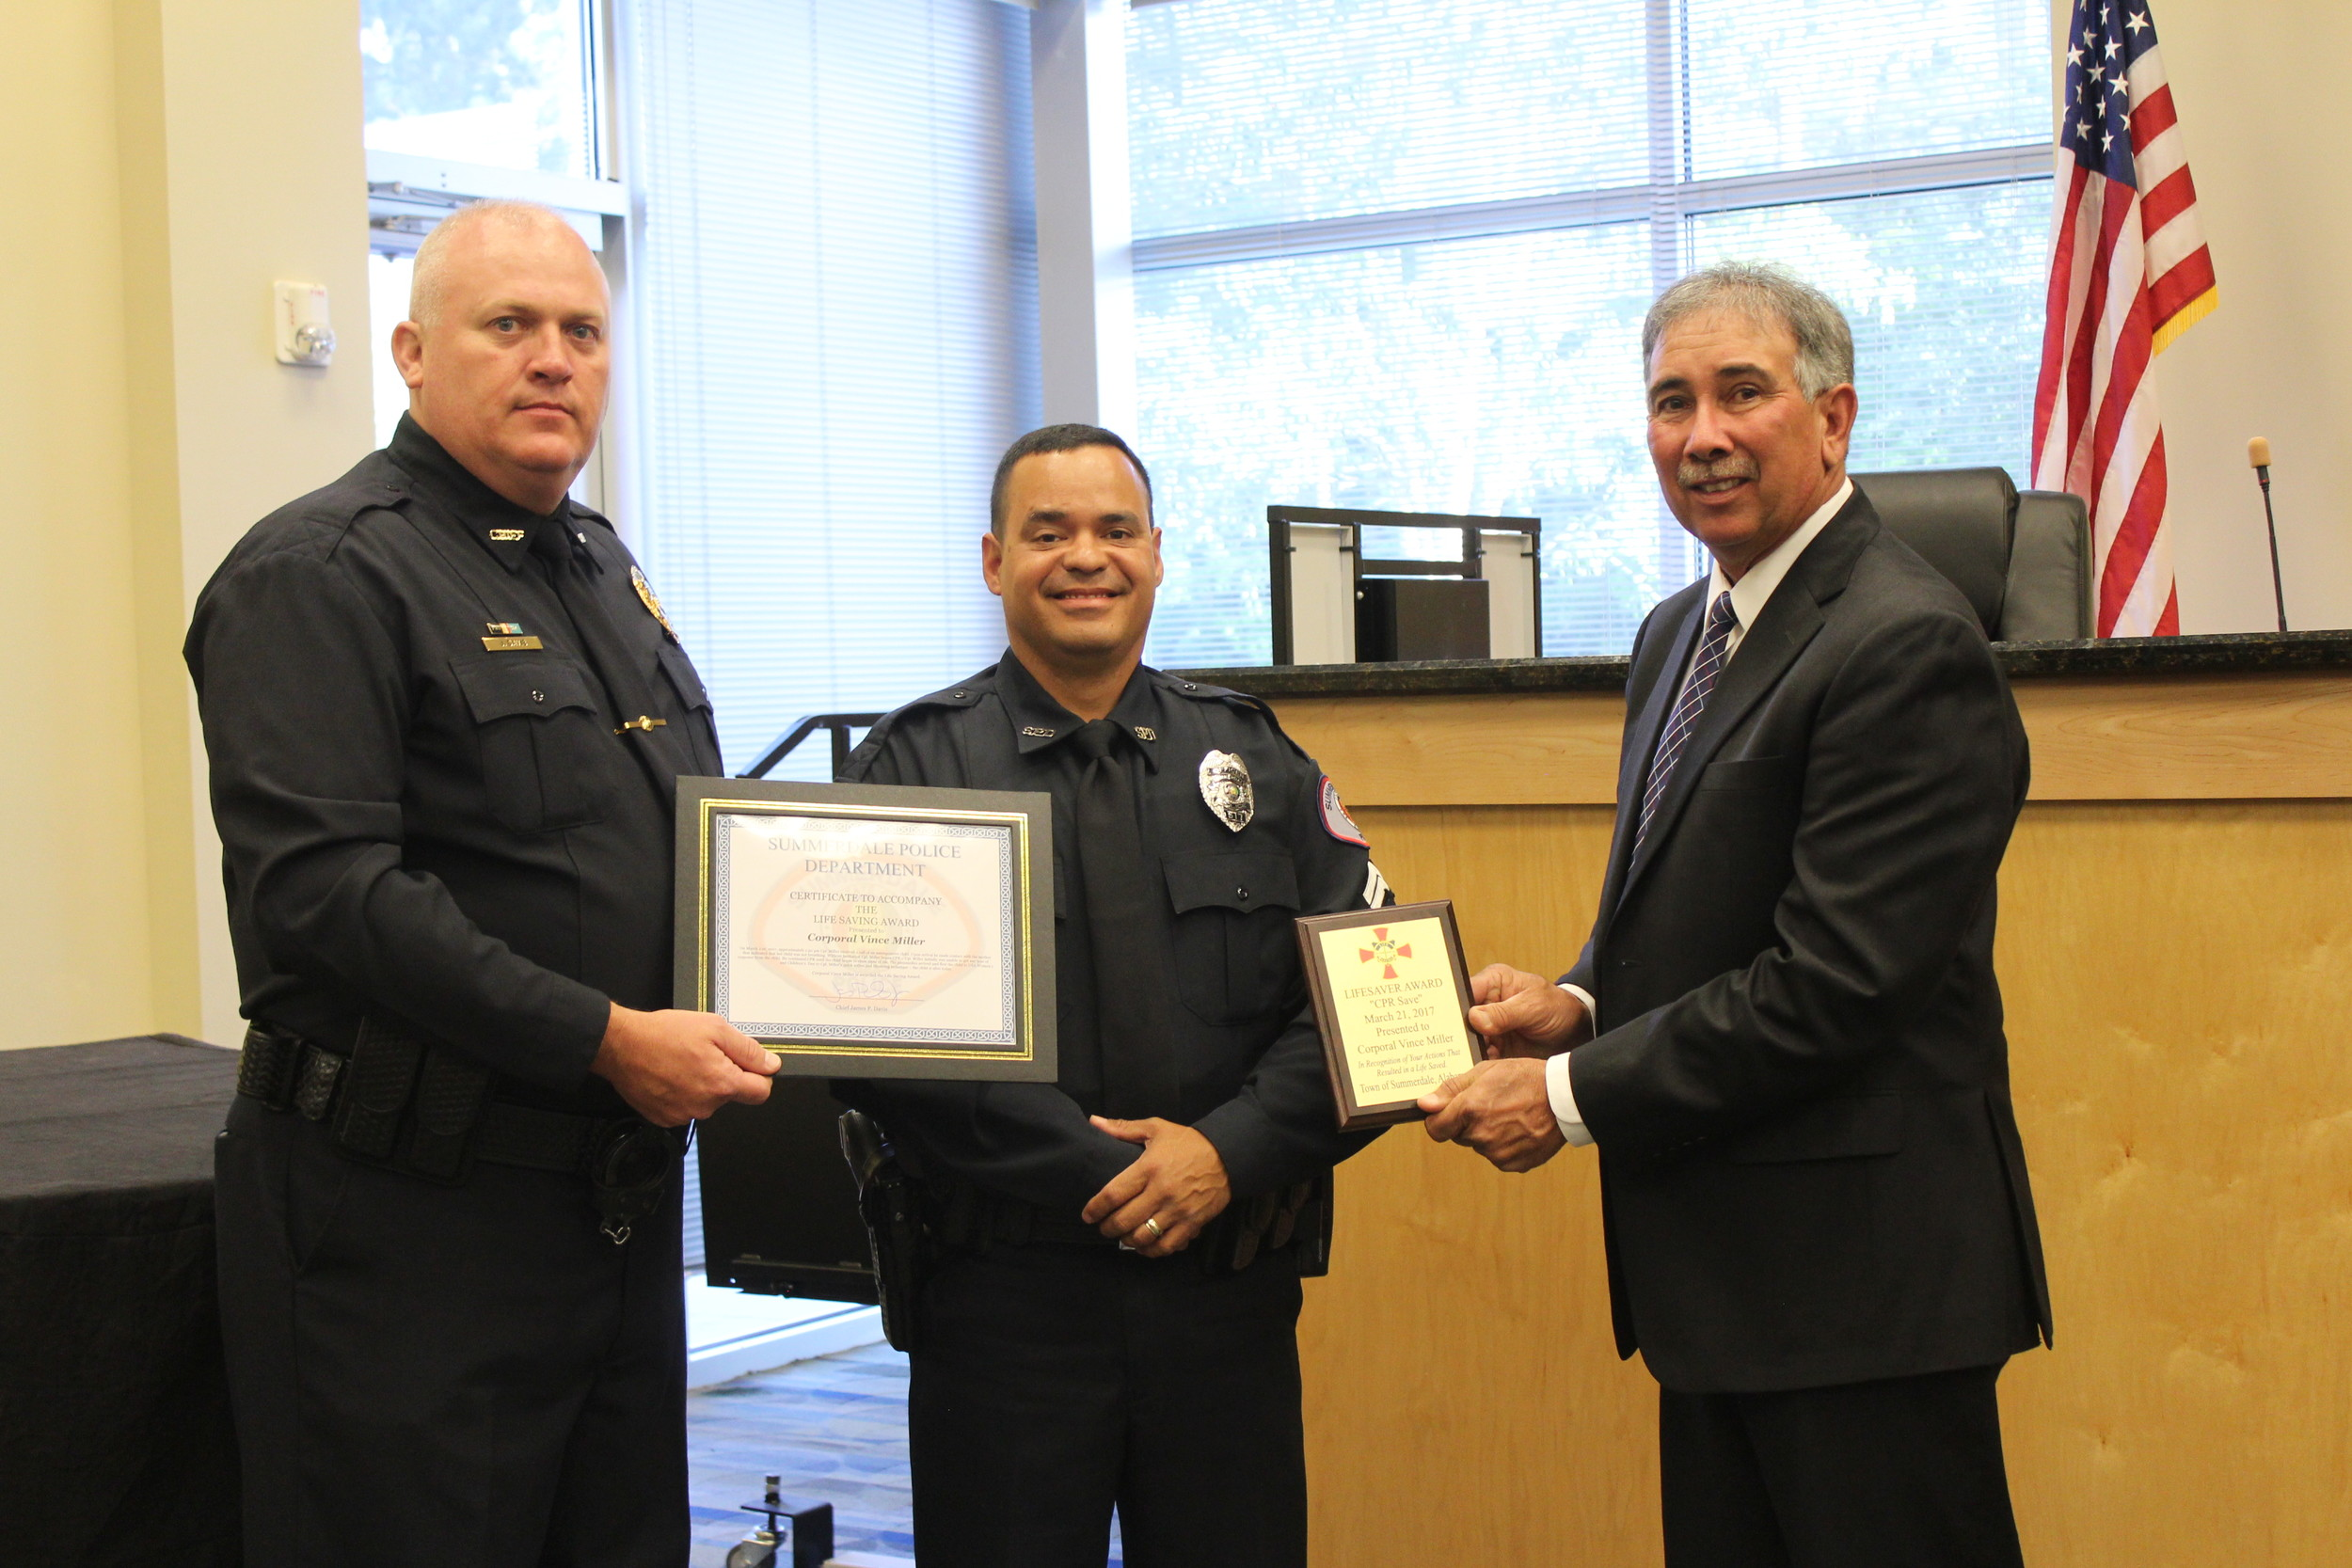 Cpl. Vince Miller with the Summerdale Police Department received one of three lifesaving awards at the Summerdale Town Council meeting on April 10.